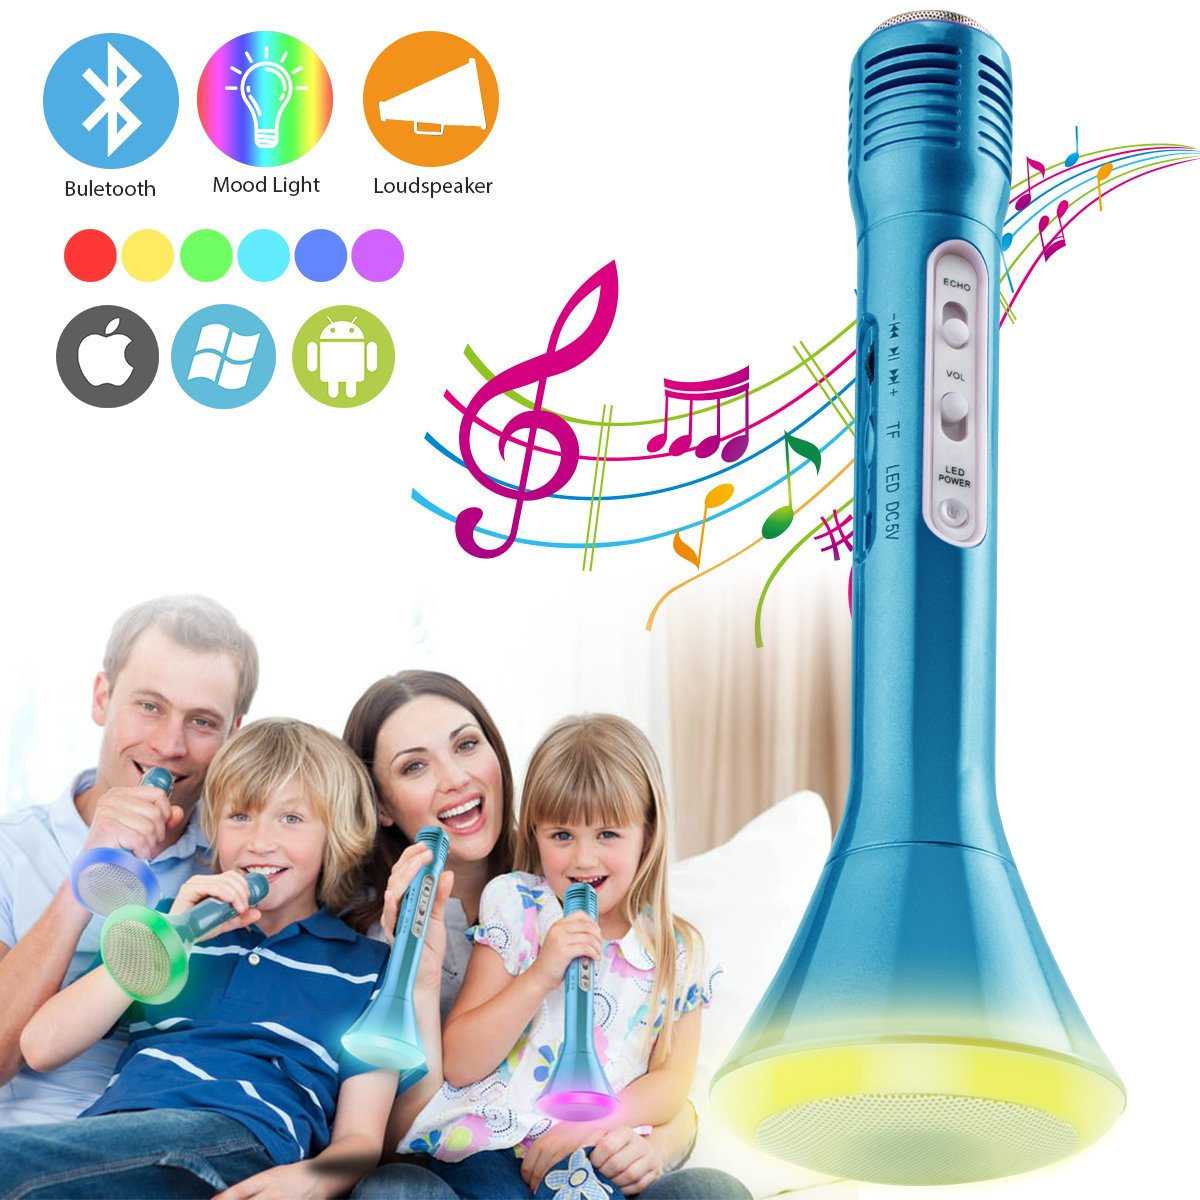 Wireless Kids Karaoke Microphone with Bluetooth Speaker, Portable Handheld Karaoke Player for Home Party KTV Music Singing Playing (Blue) Luckymore